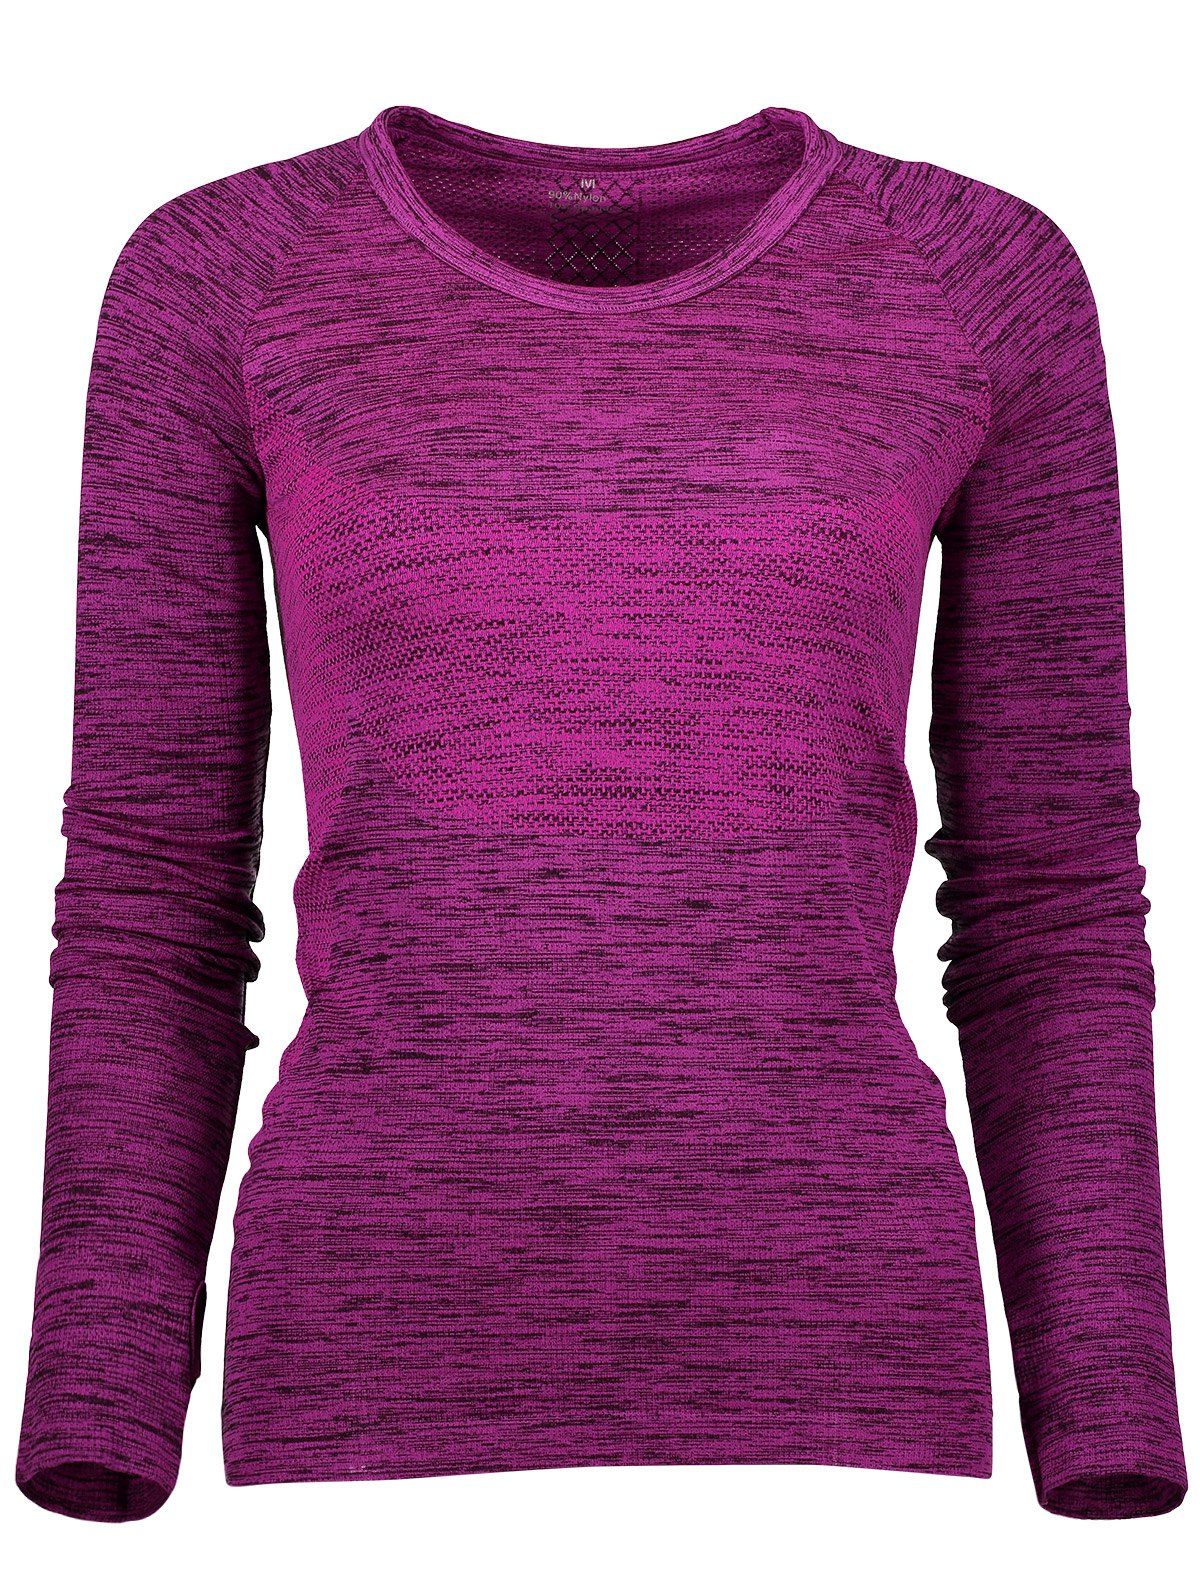 Long Sleeve Space Dye Running Top 206957502